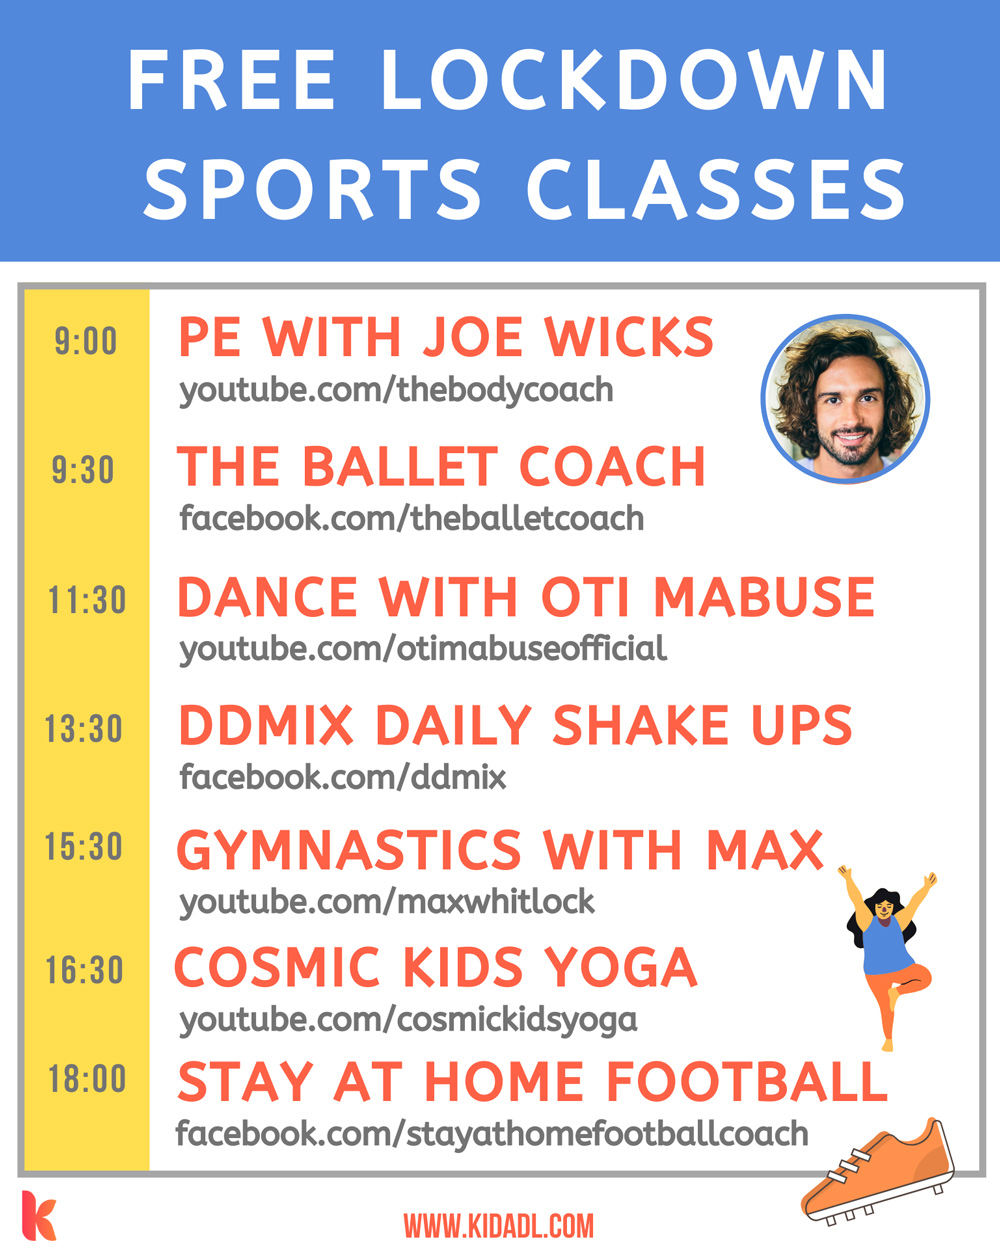 Sports classes for kids.